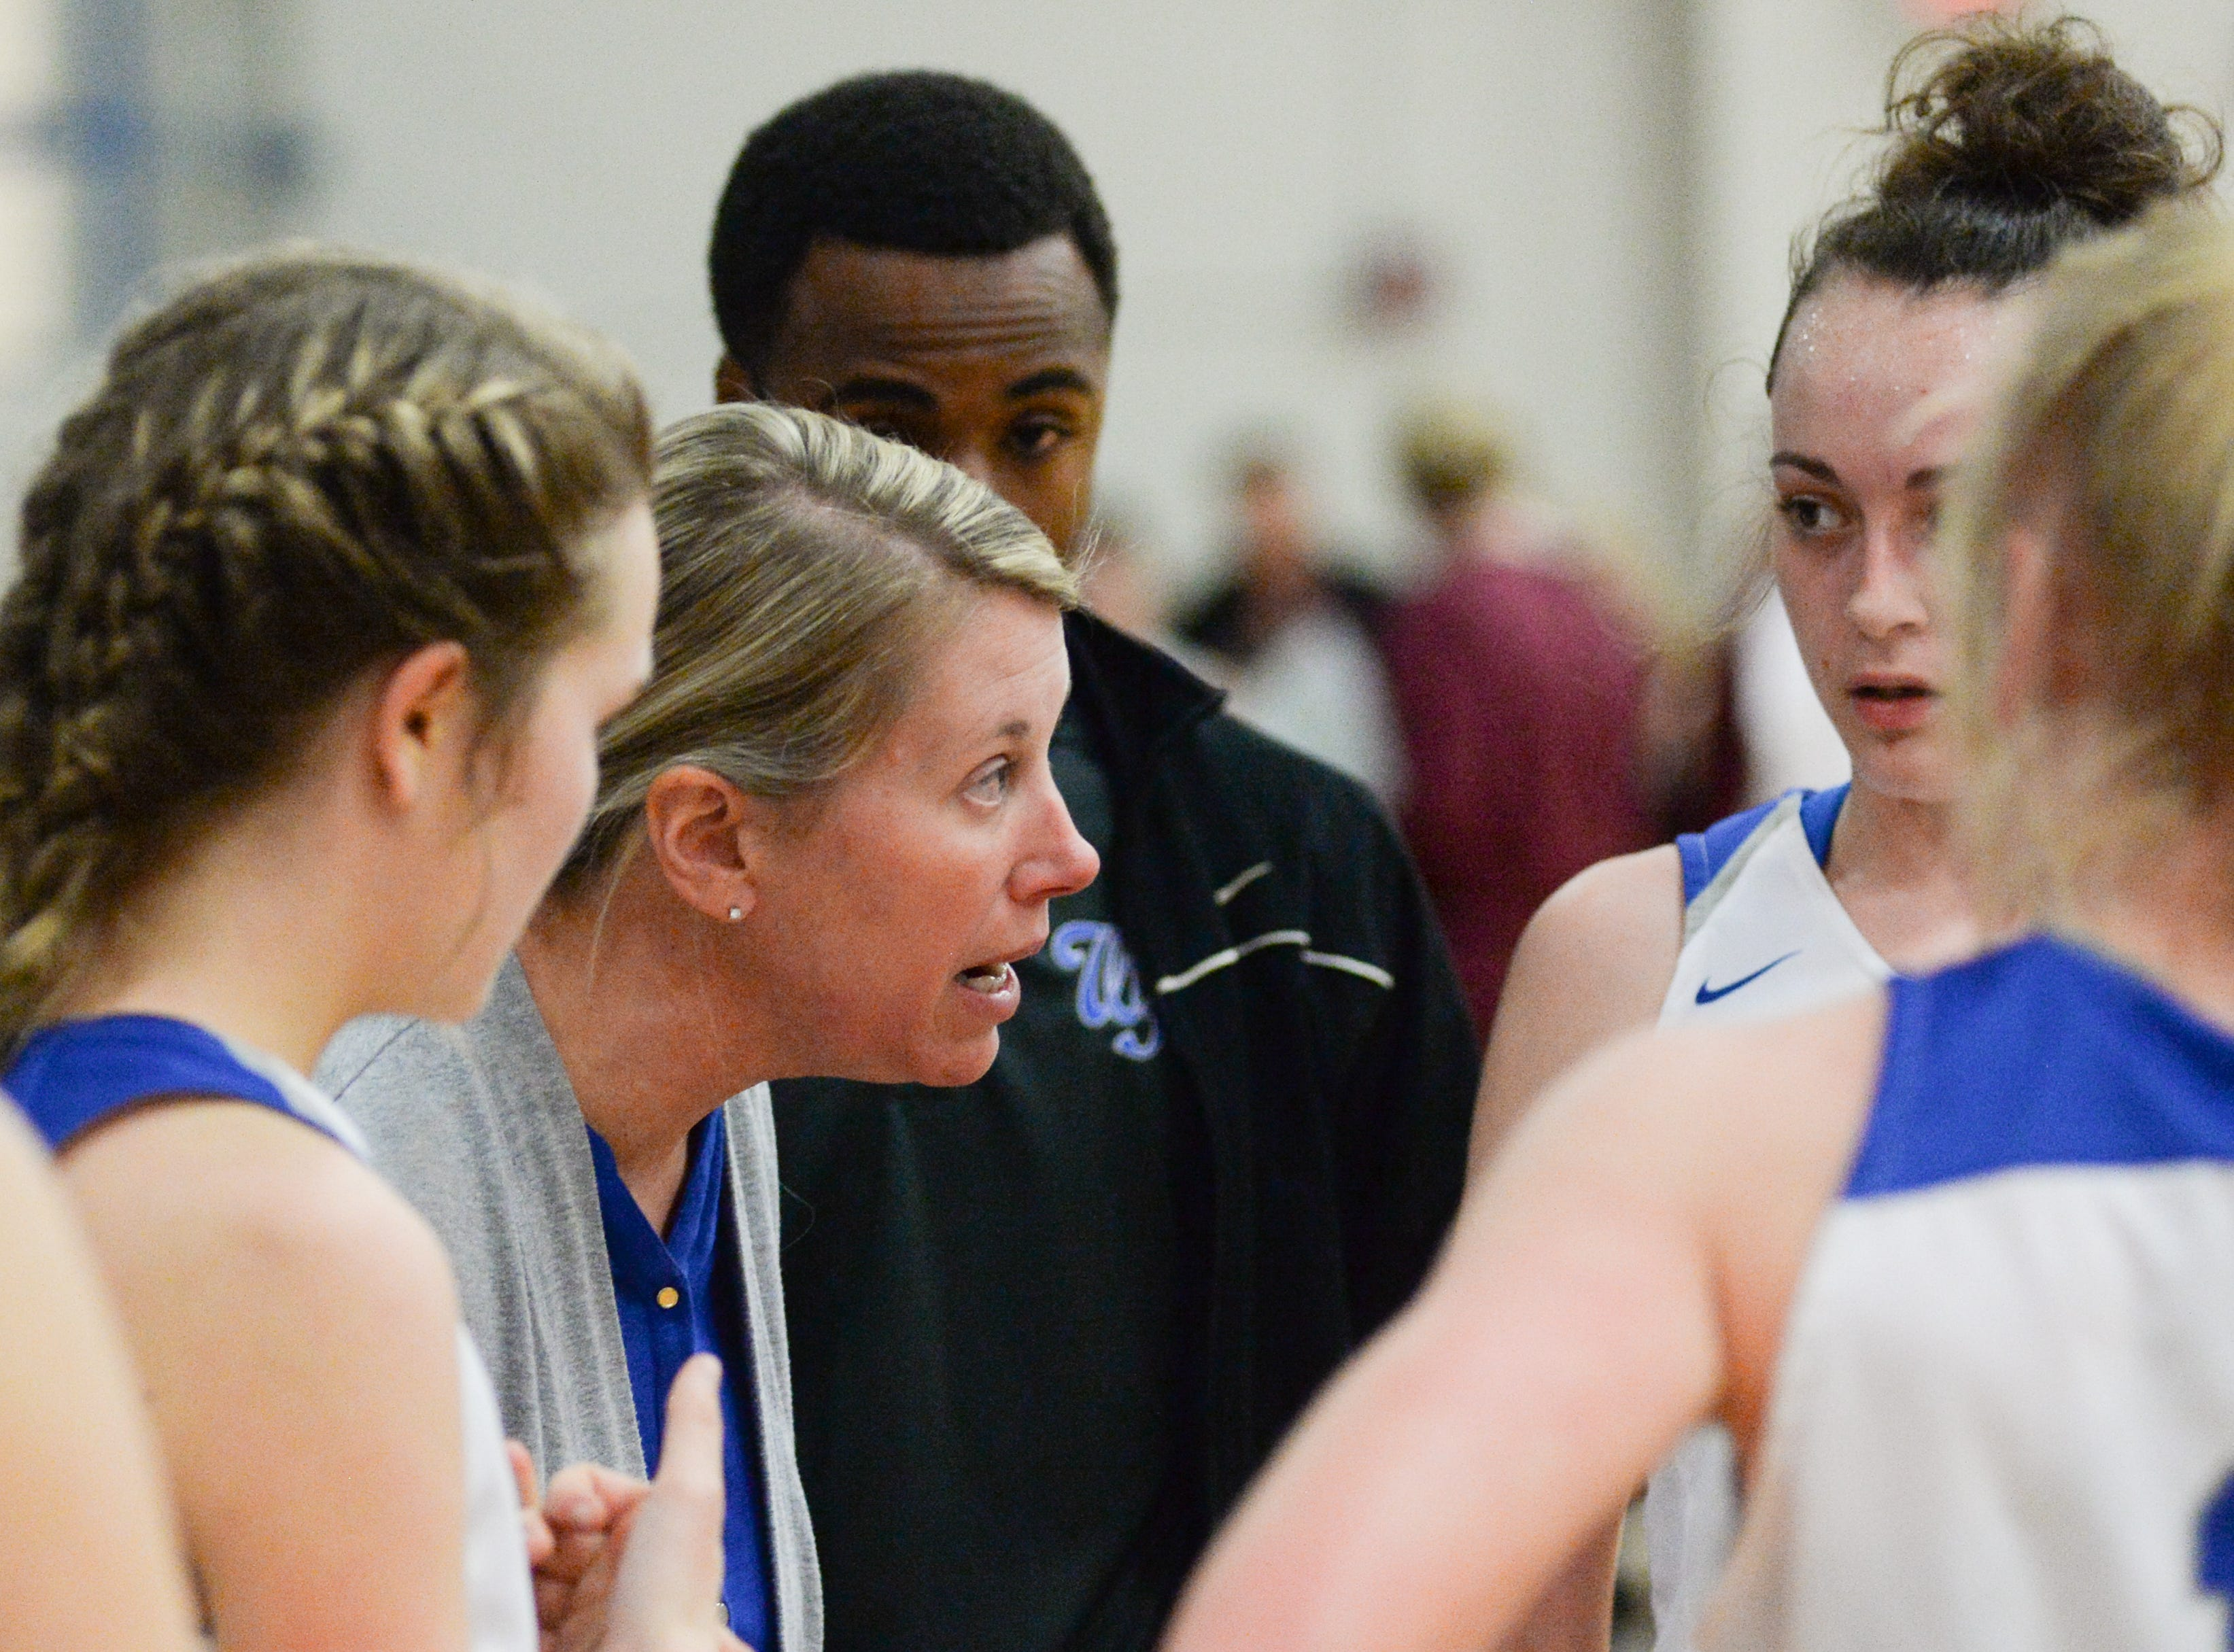 White House High School girls basketball coach Kelly Smelcer talks with players during a game against East Robertson High School at White House High School on Friday, Jan. 4. White House won 56-31.